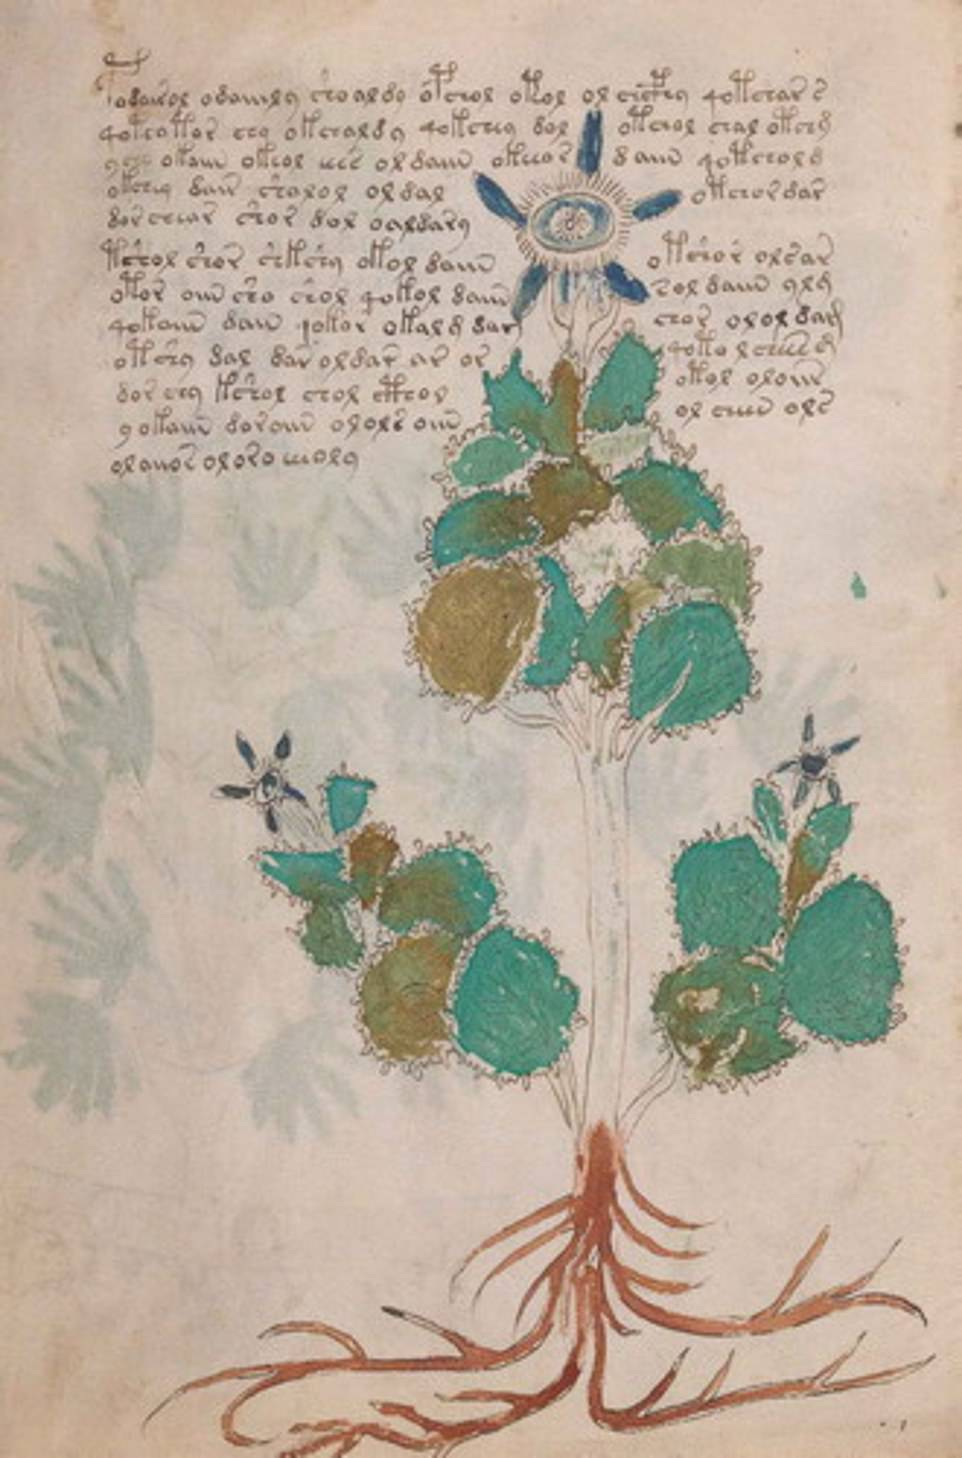 13535342-7031849-This_figure_shows_Folio_19_left_Borage_Borago_officinalis_The_fi-a-86_1557936438825.jpg